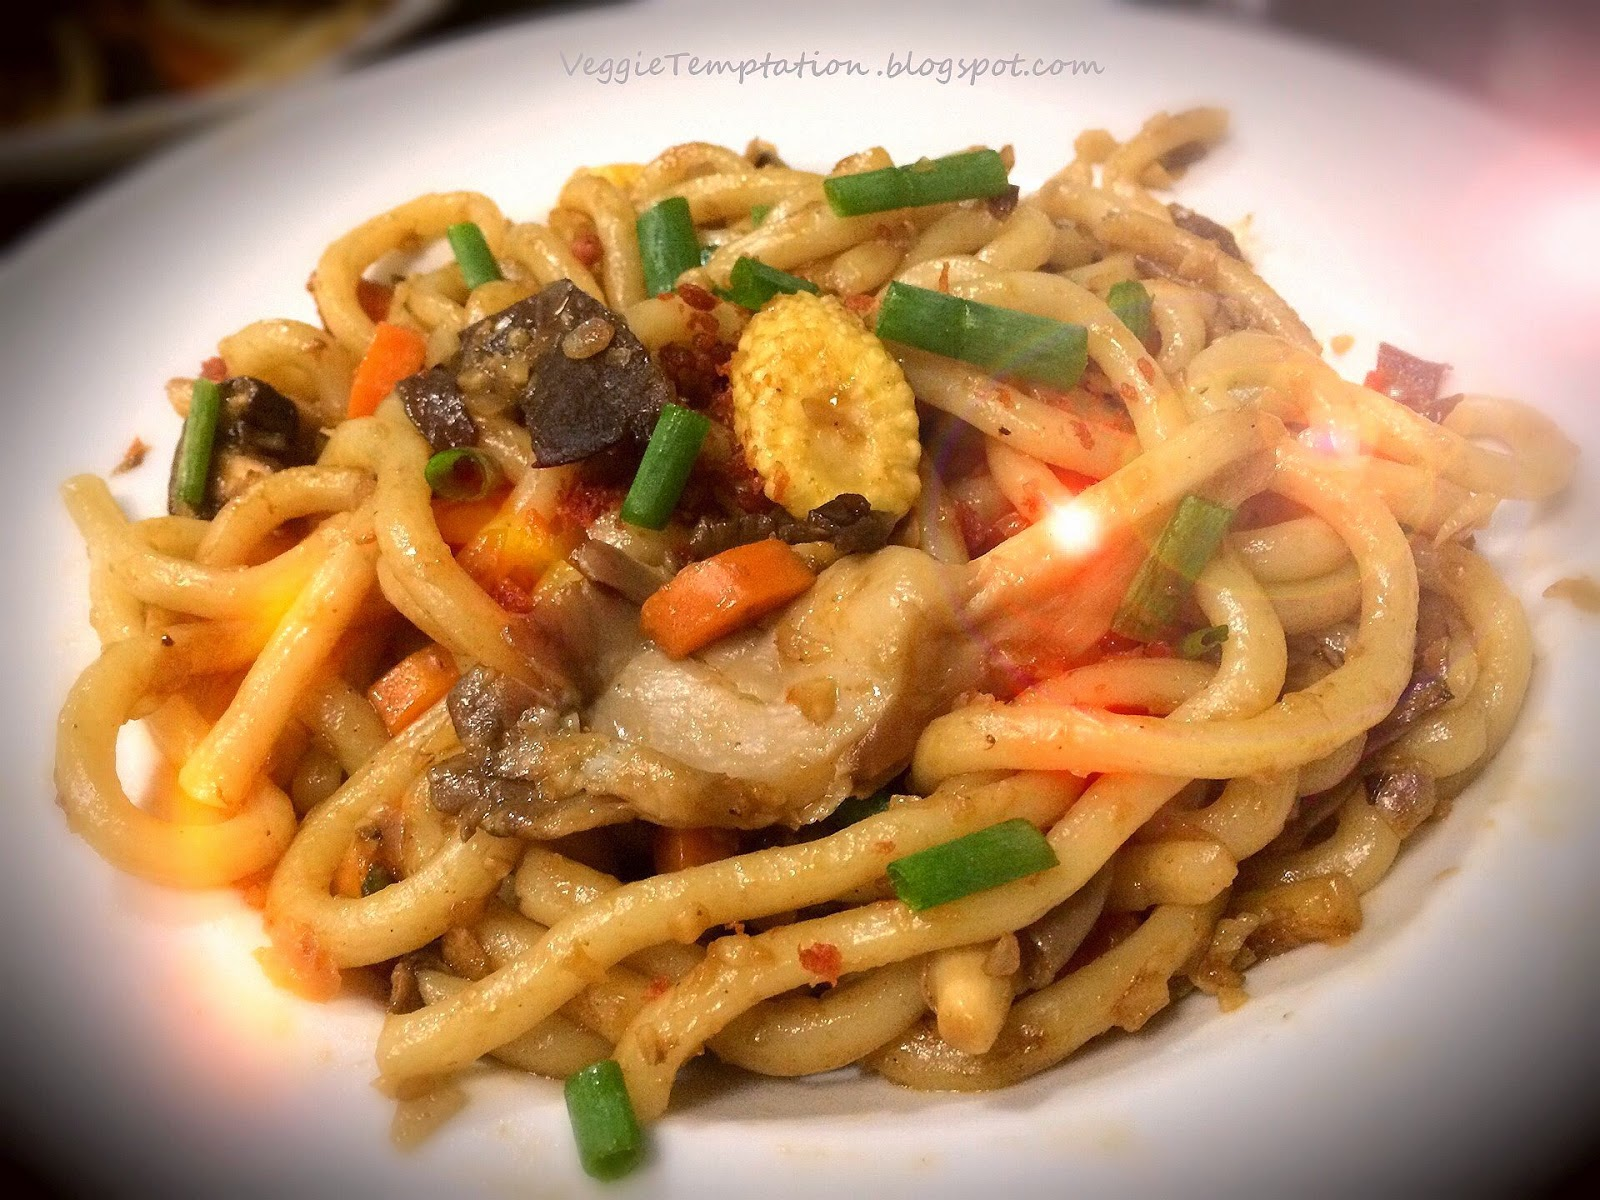 Veggie Temptation: Vegetarian Stir-Fried Udon Noodles ...